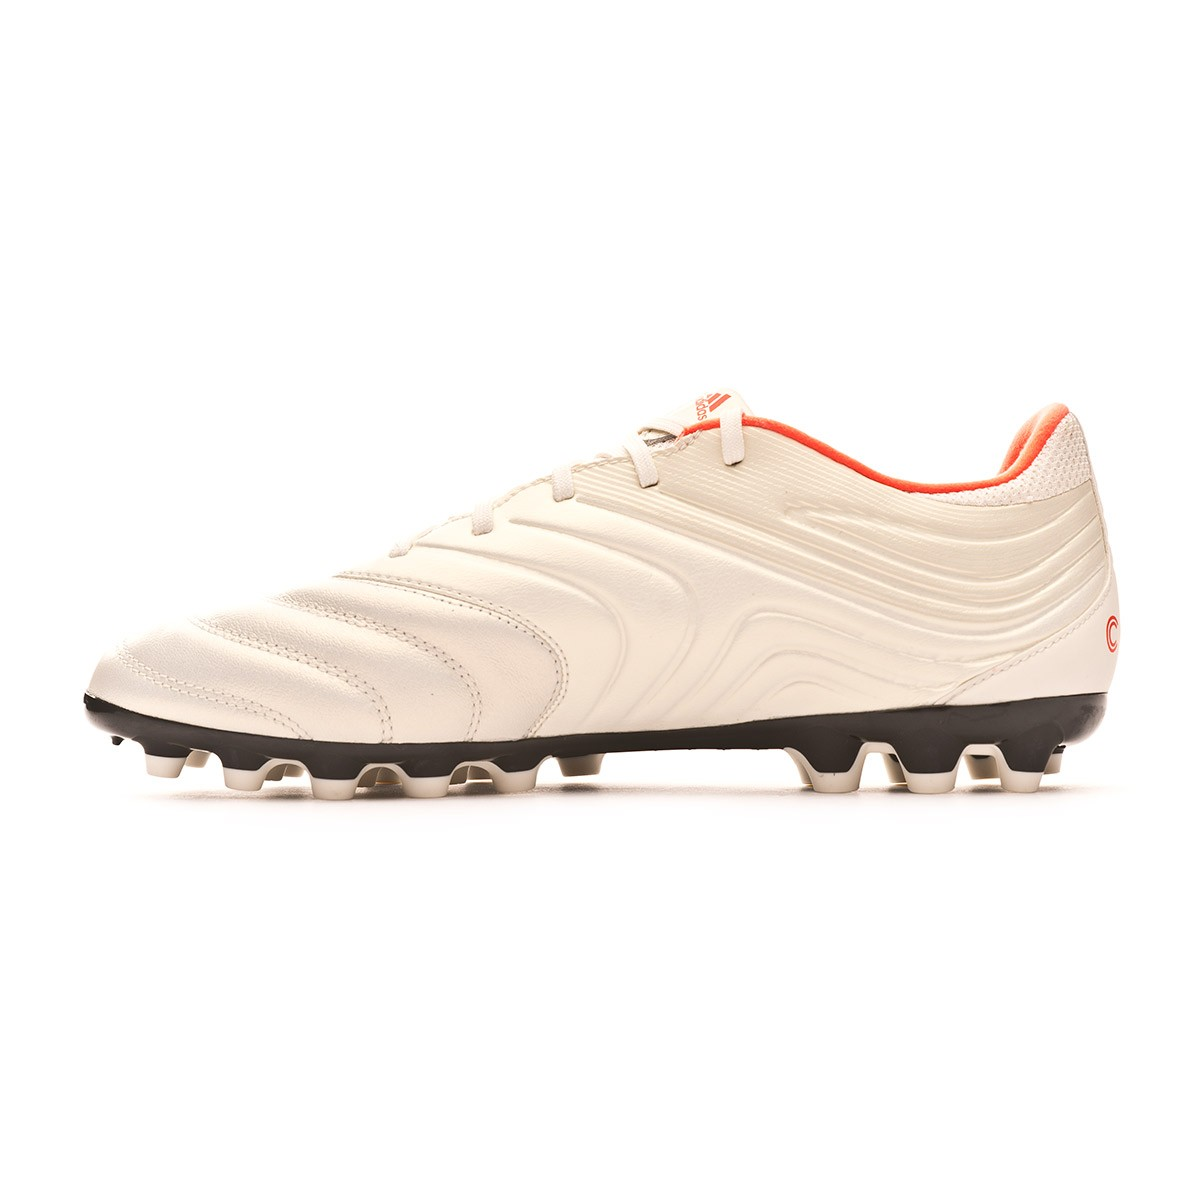 68ea80263 Scarpe adidas Copa 19.3 AG Off white-Solar red-Core black - Negozio di  calcio Fútbol Emotion